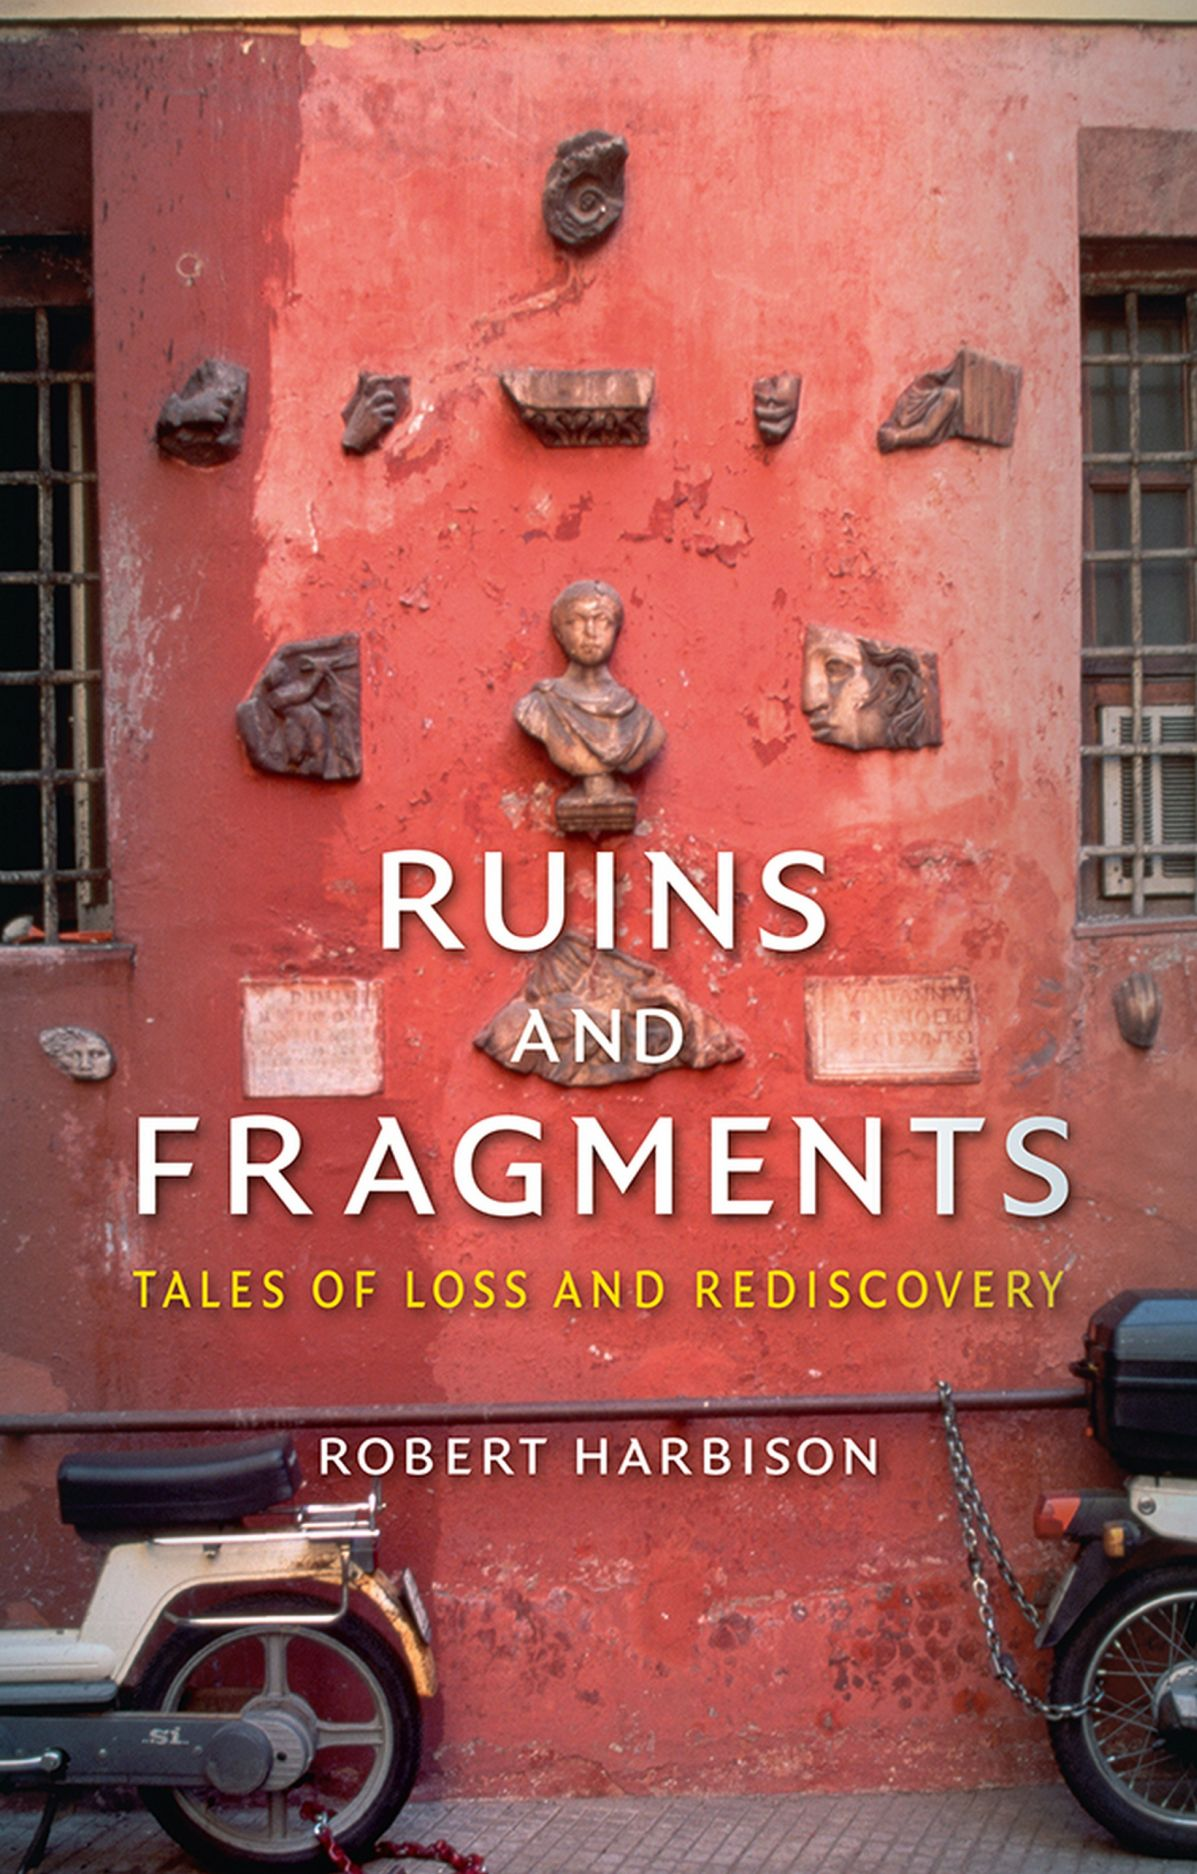 Ruins and Fragments: Tales of Loss and Rediscovery